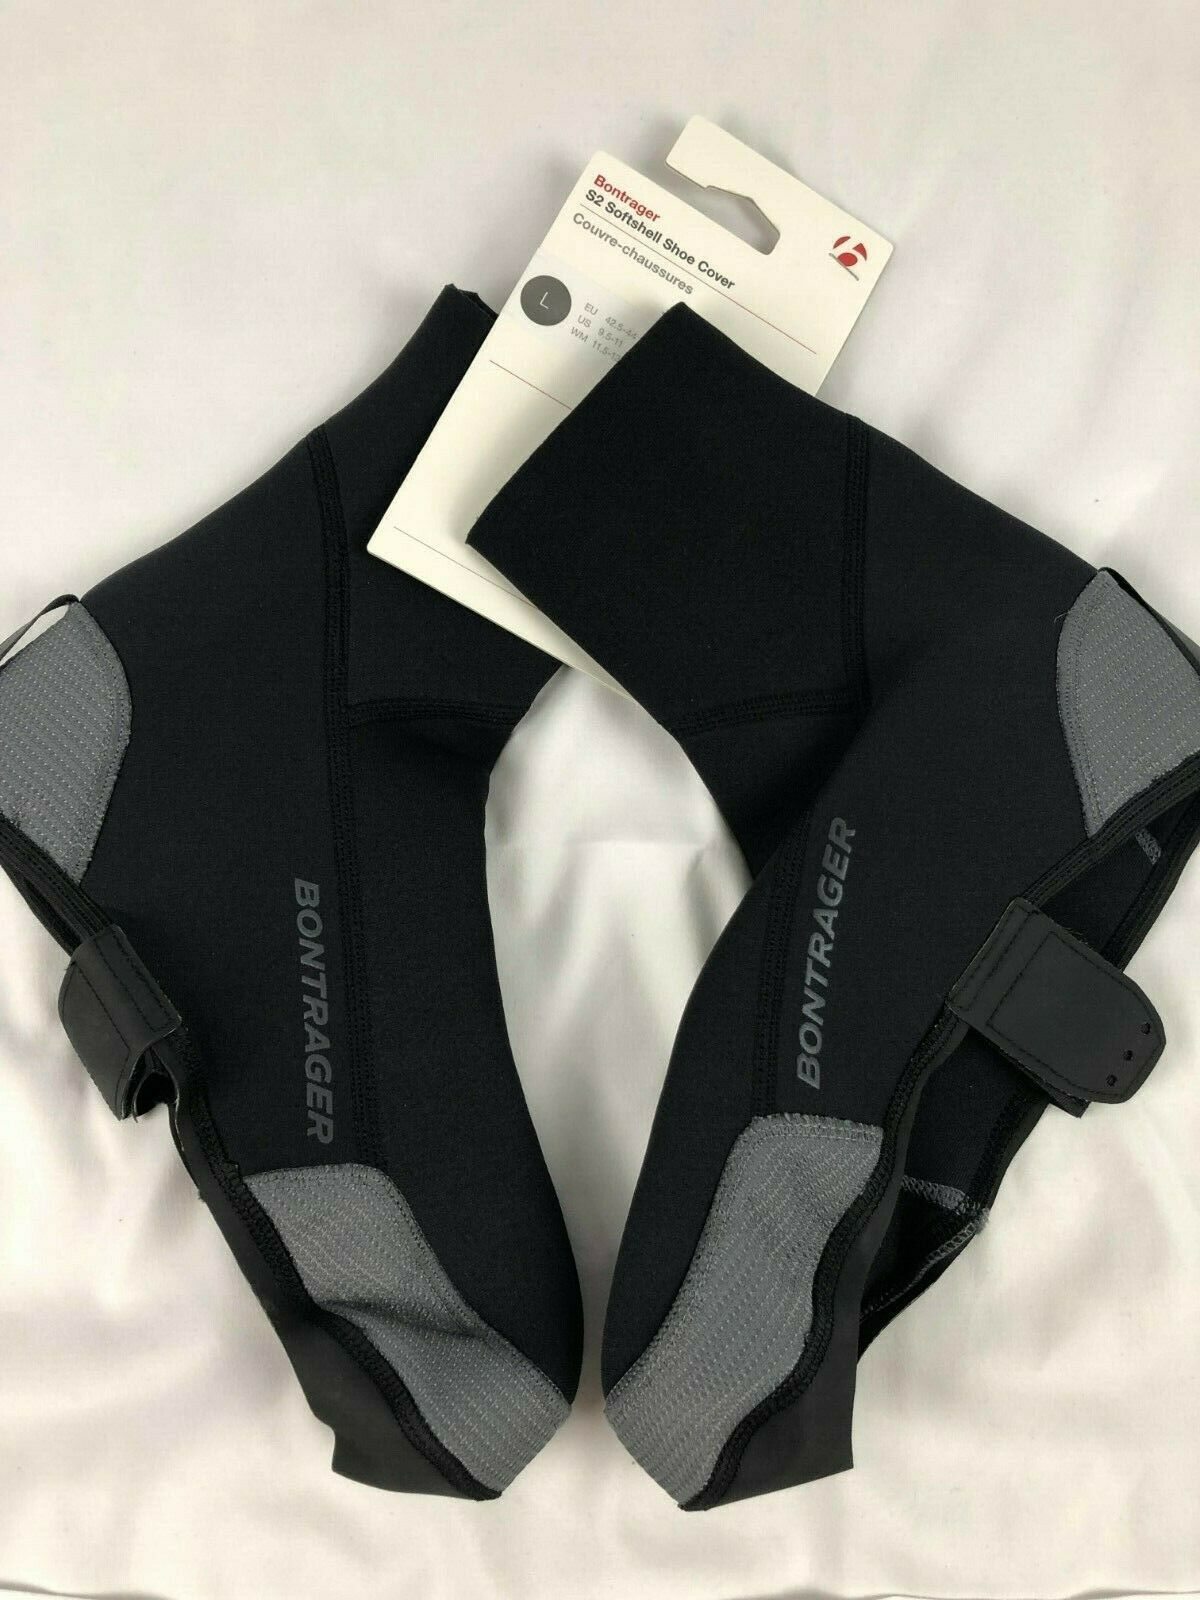 Bontrager S2 Softshell shoes Cover SIZE Large (3r)